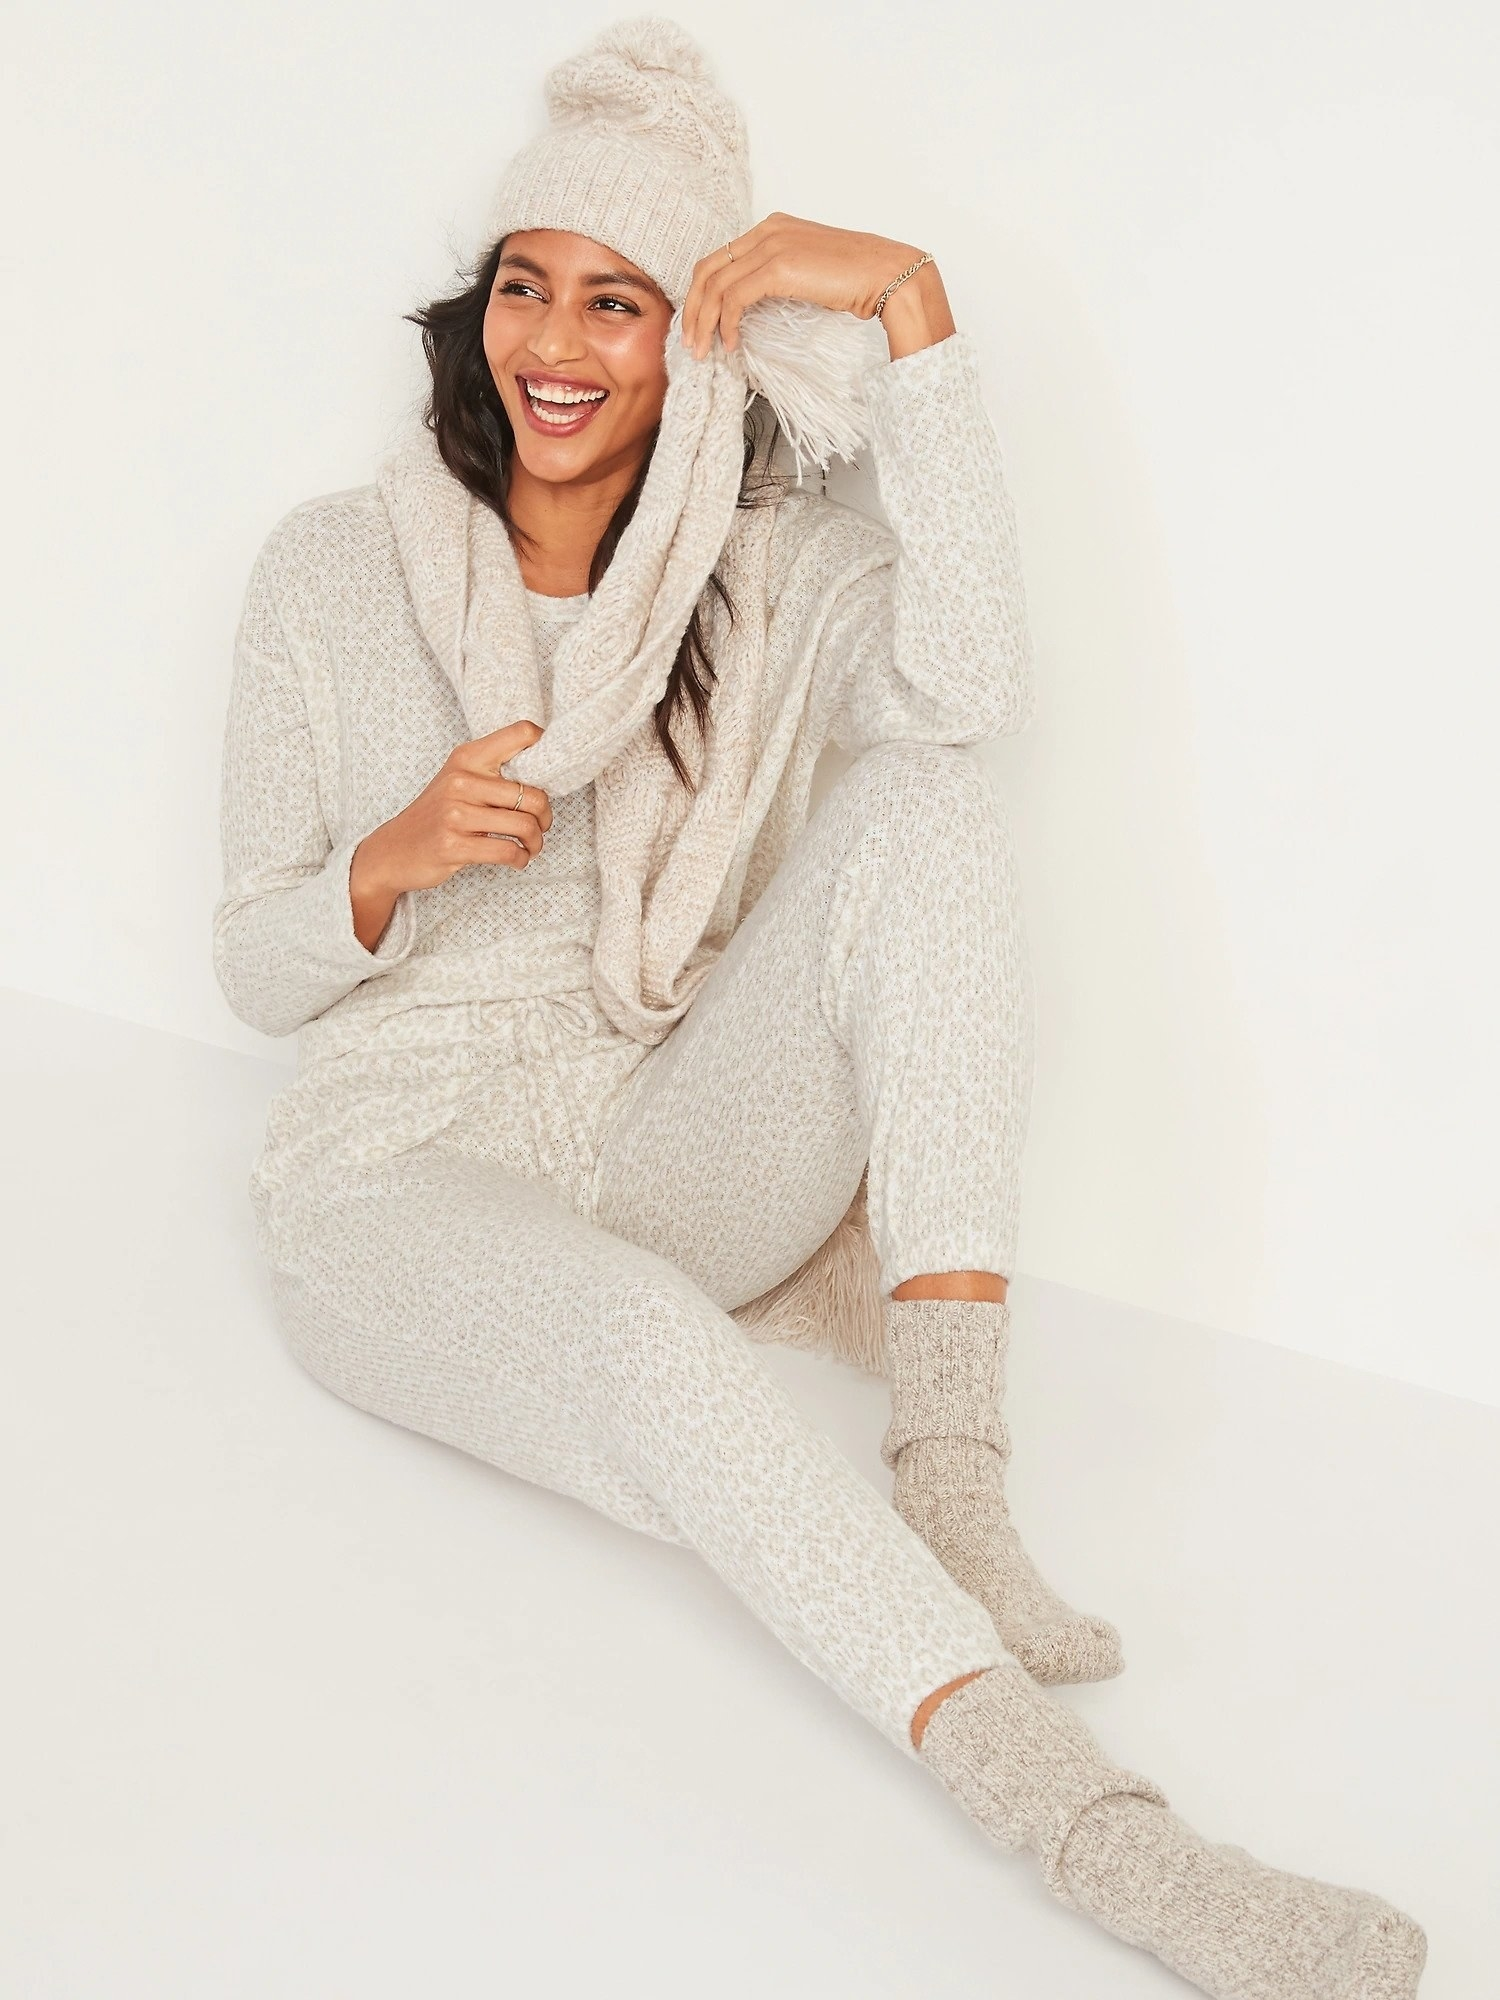 A woman wearing white leopard print jogger style lounge pants and a matching top scarf socks and hat